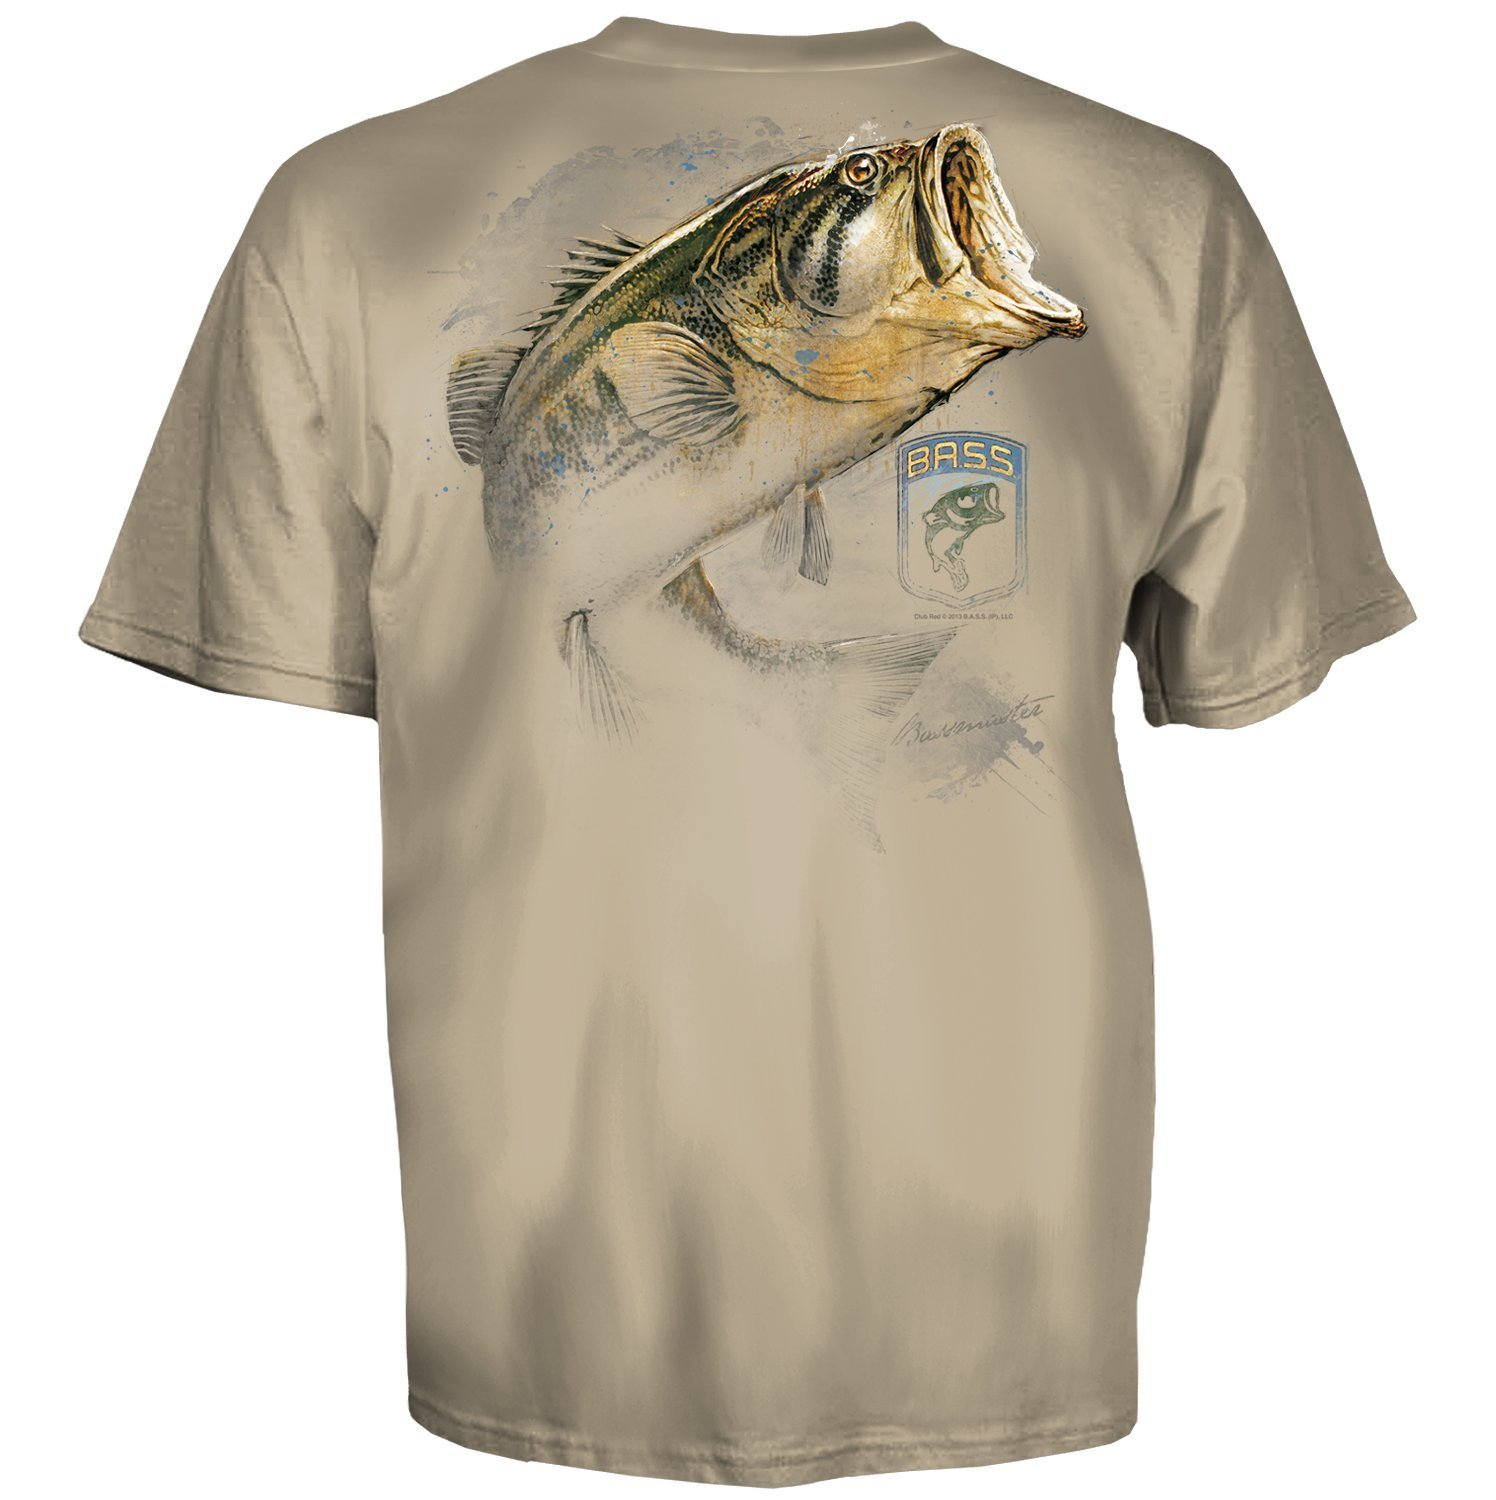 Bassmaster bass fishing pencil drawing sand short sleeve for Bass fishing shirt